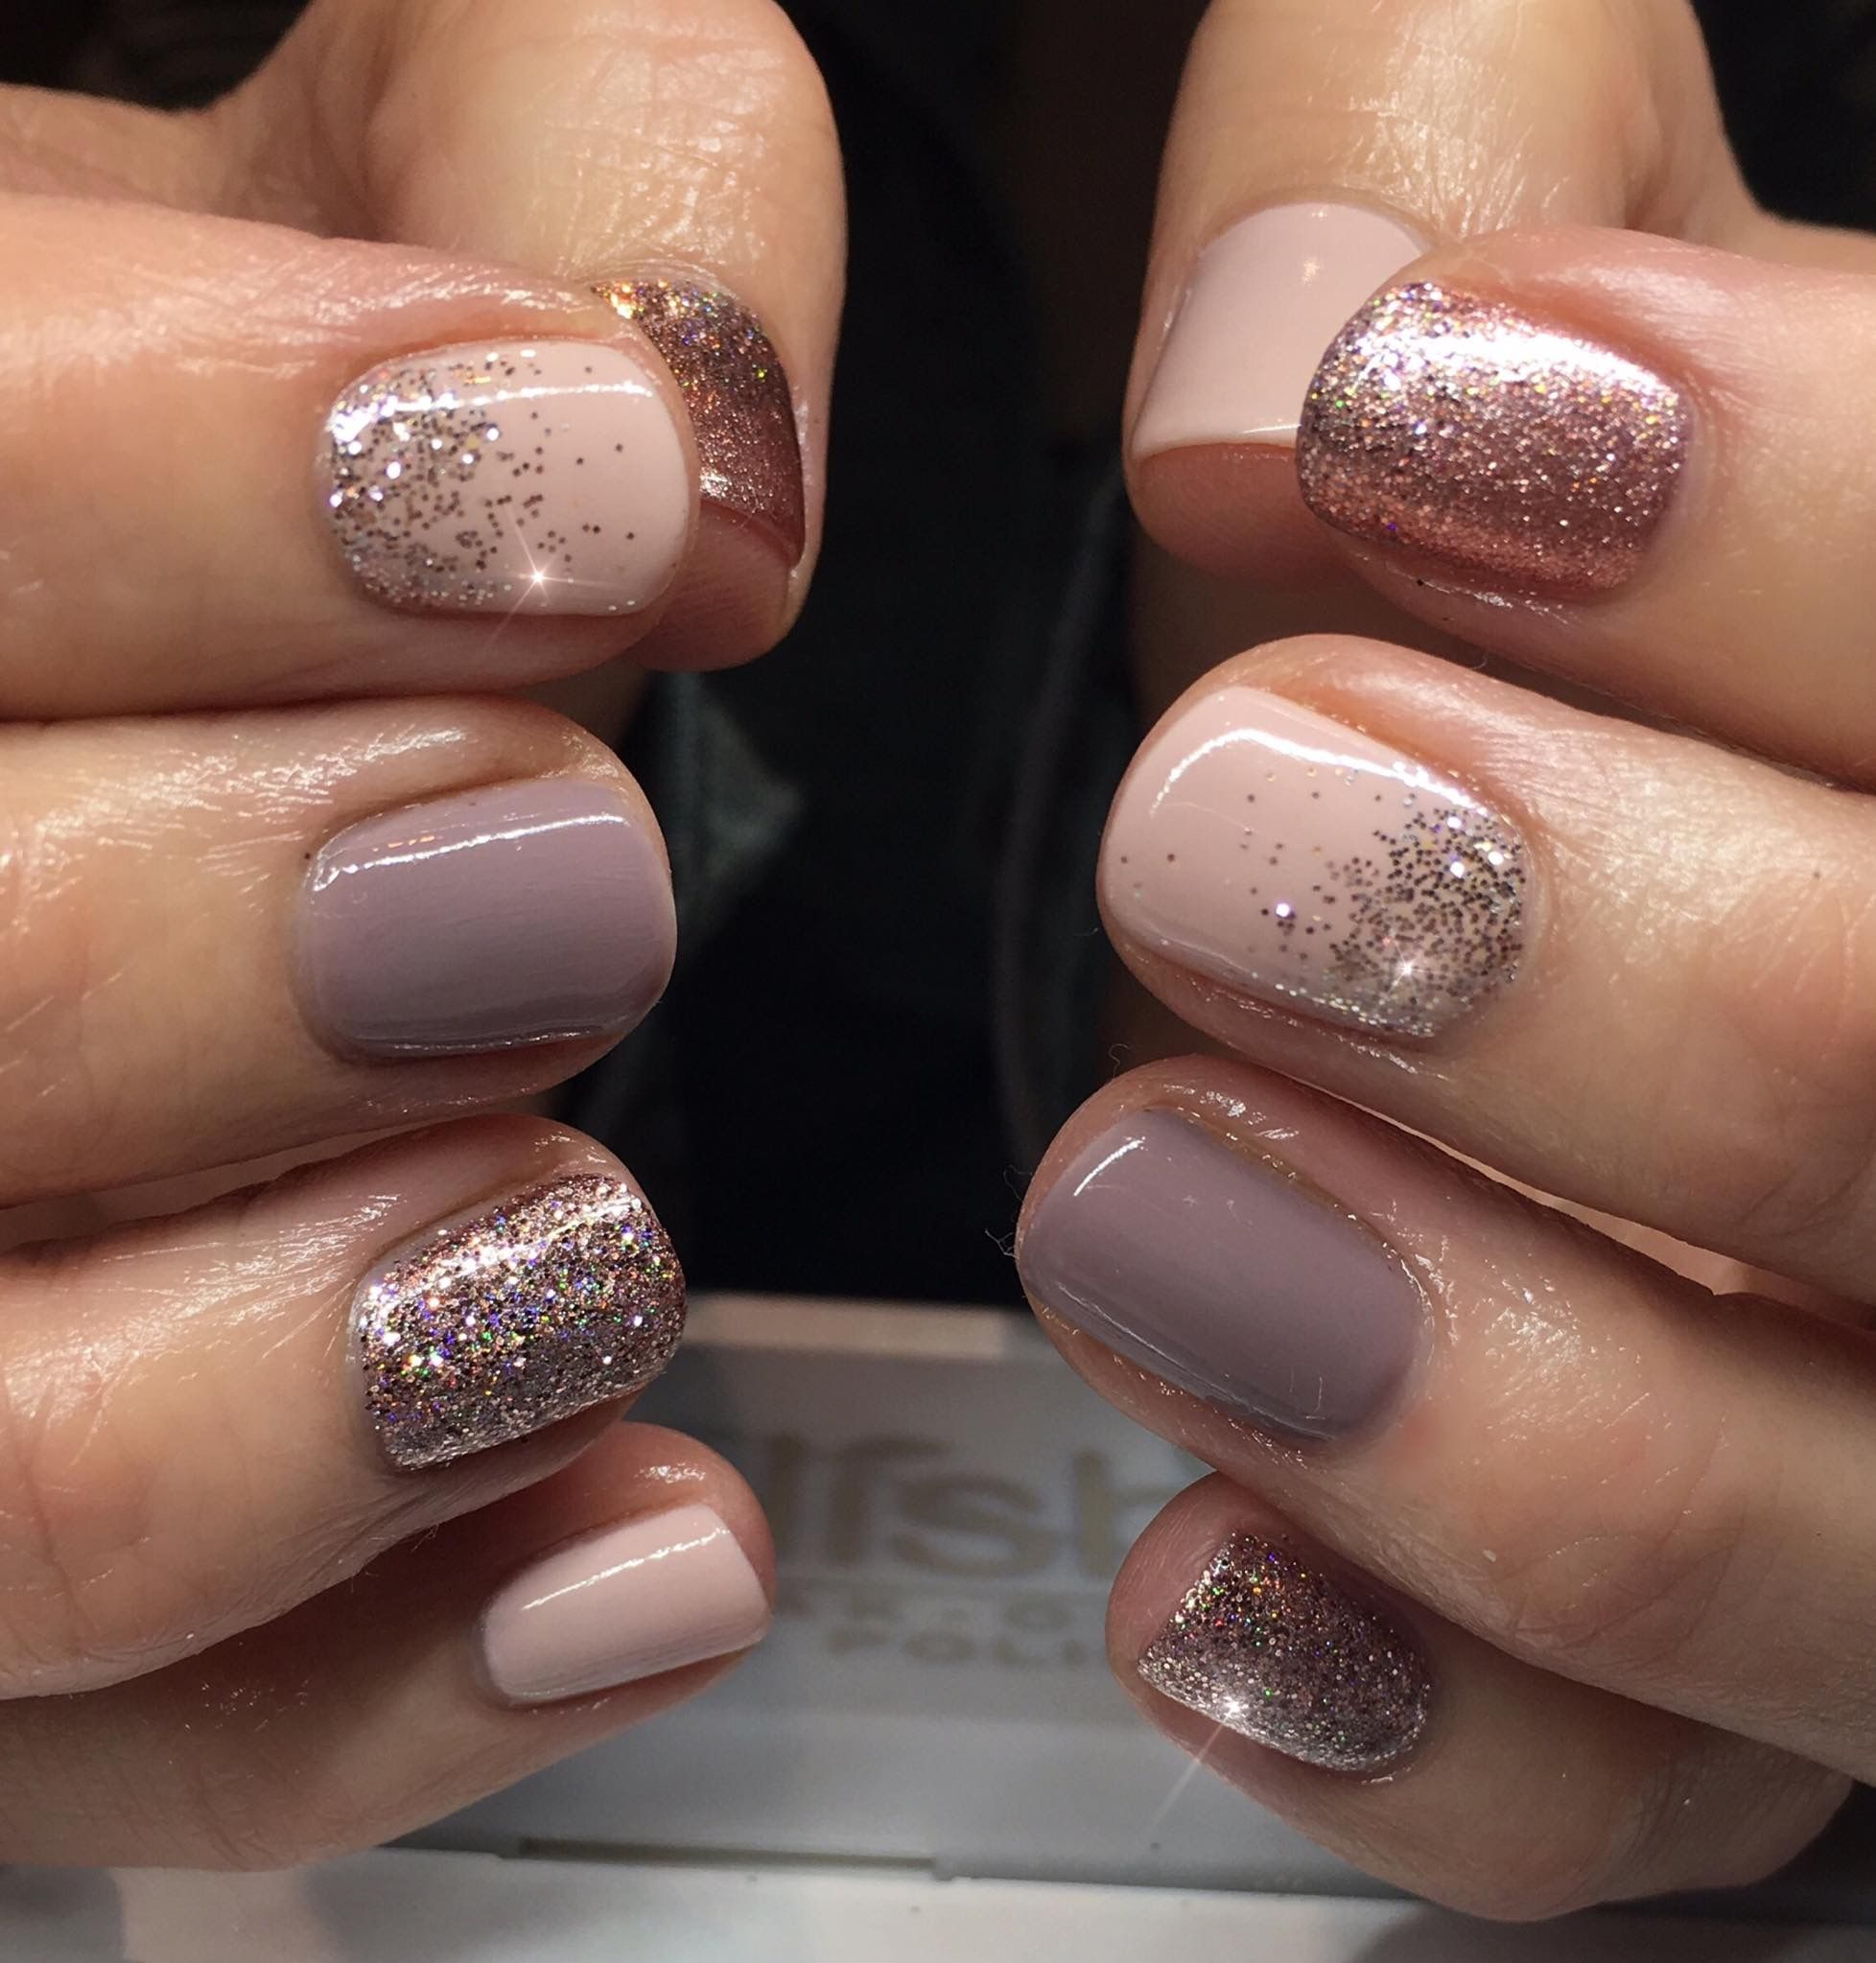 Pin by kirsten lewis on manicures pinterest makeup glitter nail